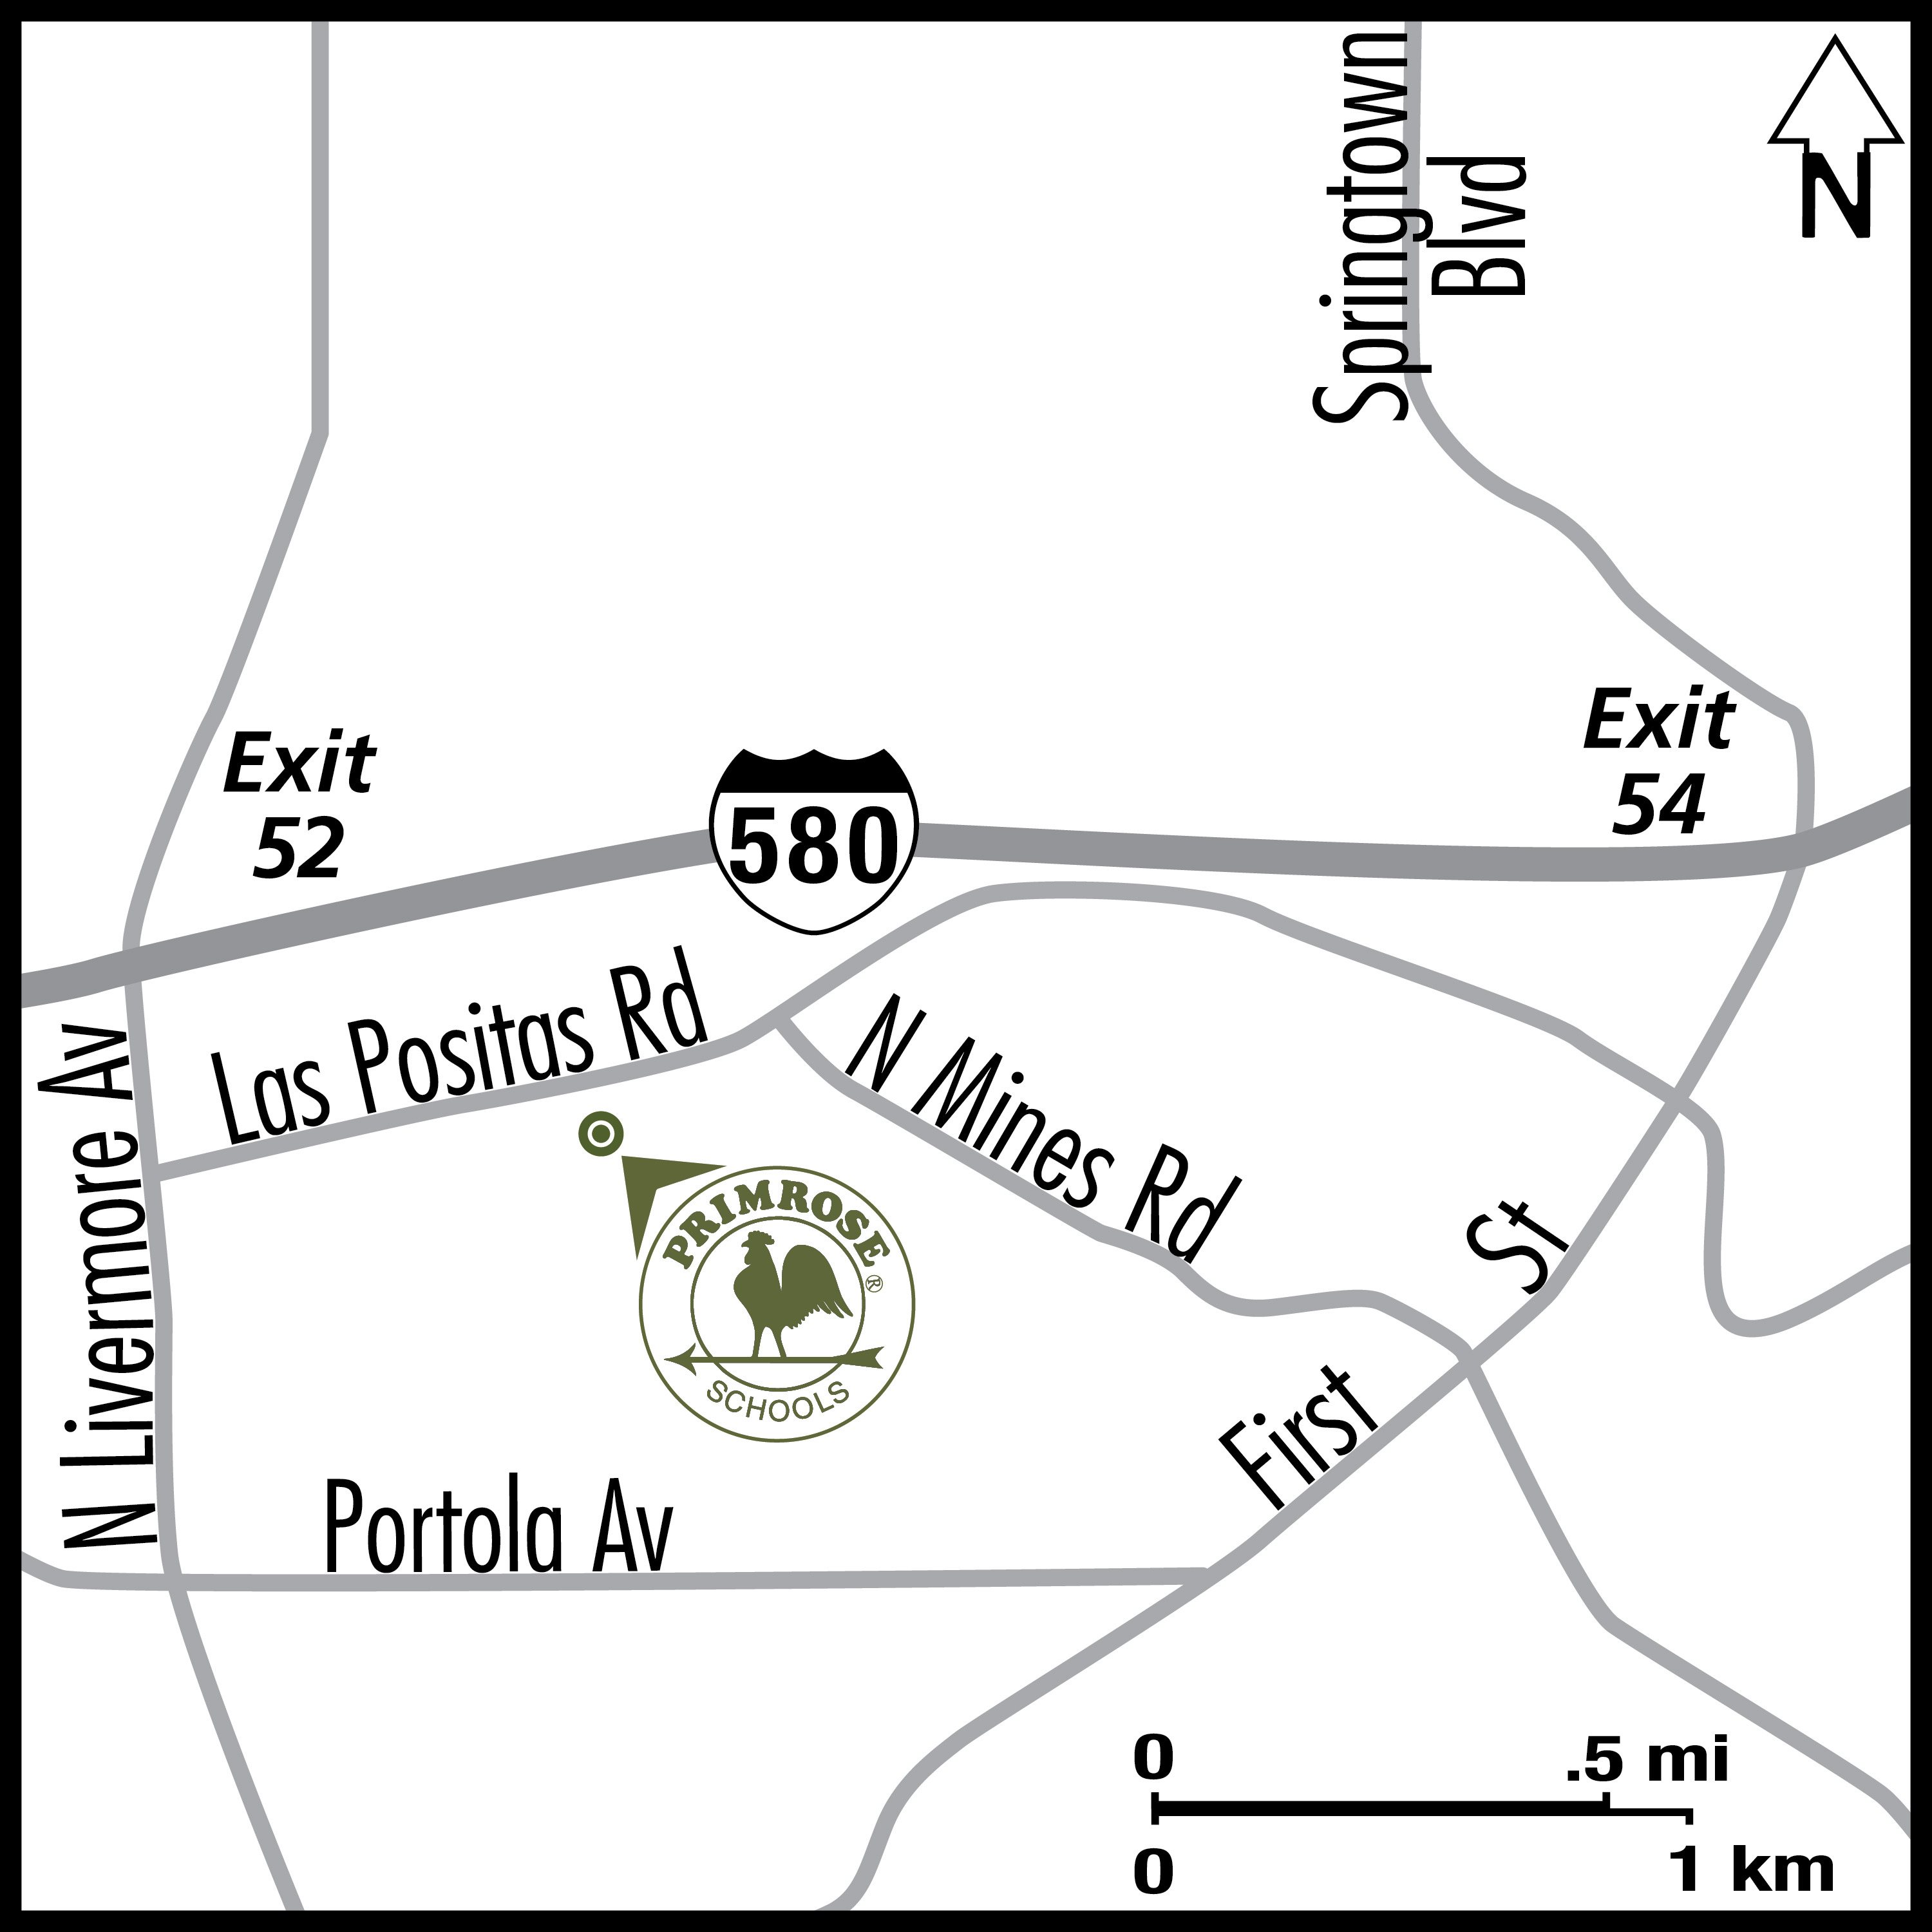 Map depicting the location of the Primrose school of Livermore